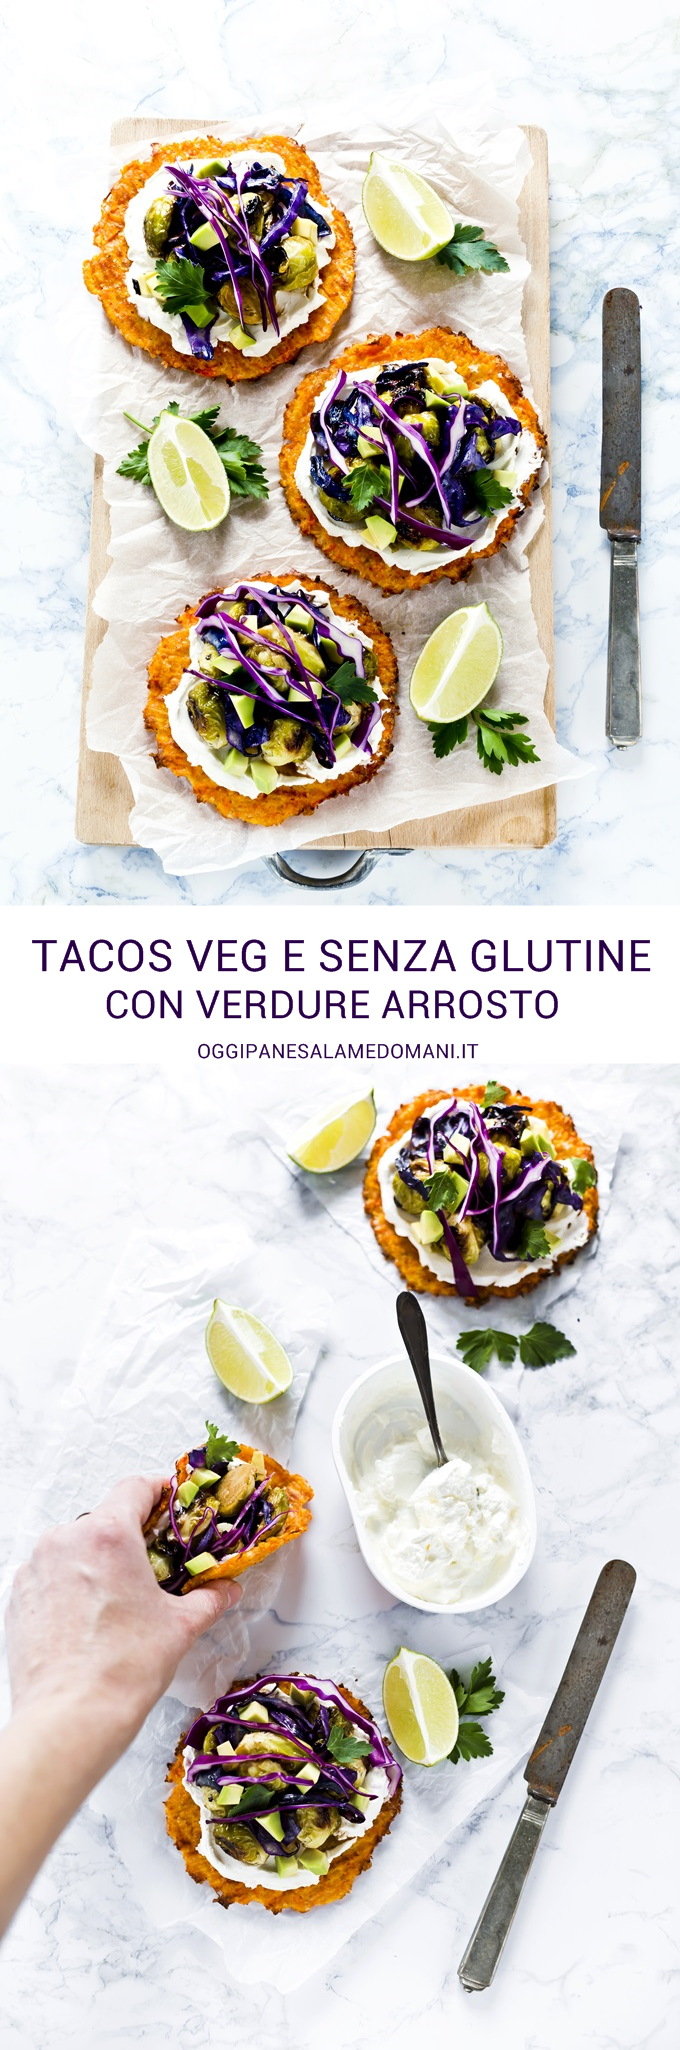 Tacos carote, cavoletti avocado - carrot taco shells with roasted brussels sprouts, avocado and purple cabbage - vegetarian taco recipe - fresco spalmabile Nonno Nanni